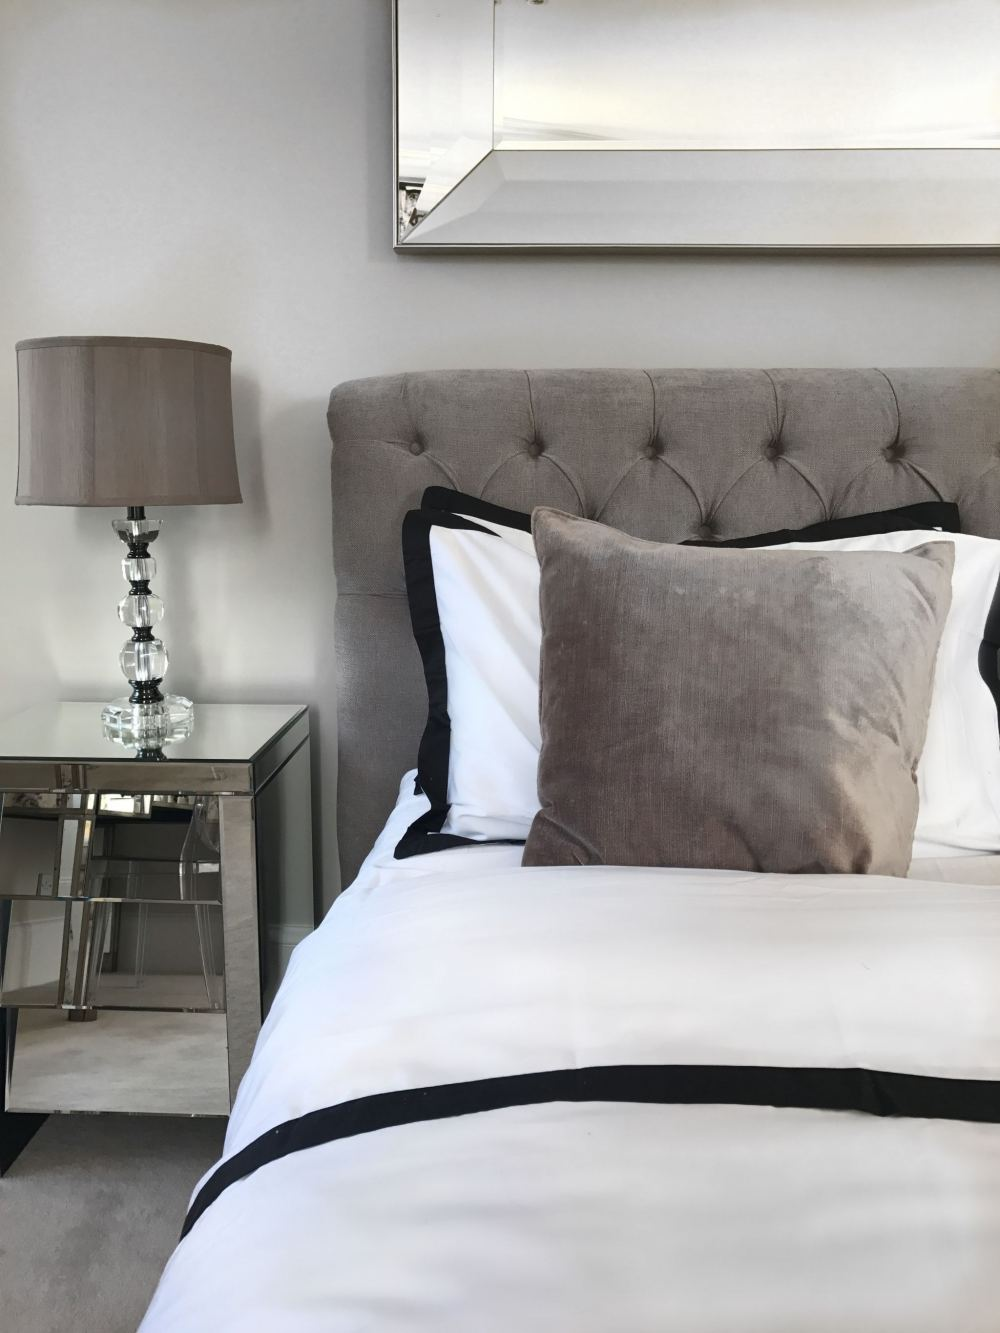 Home Update: New Guest Room! - Fleur De Force